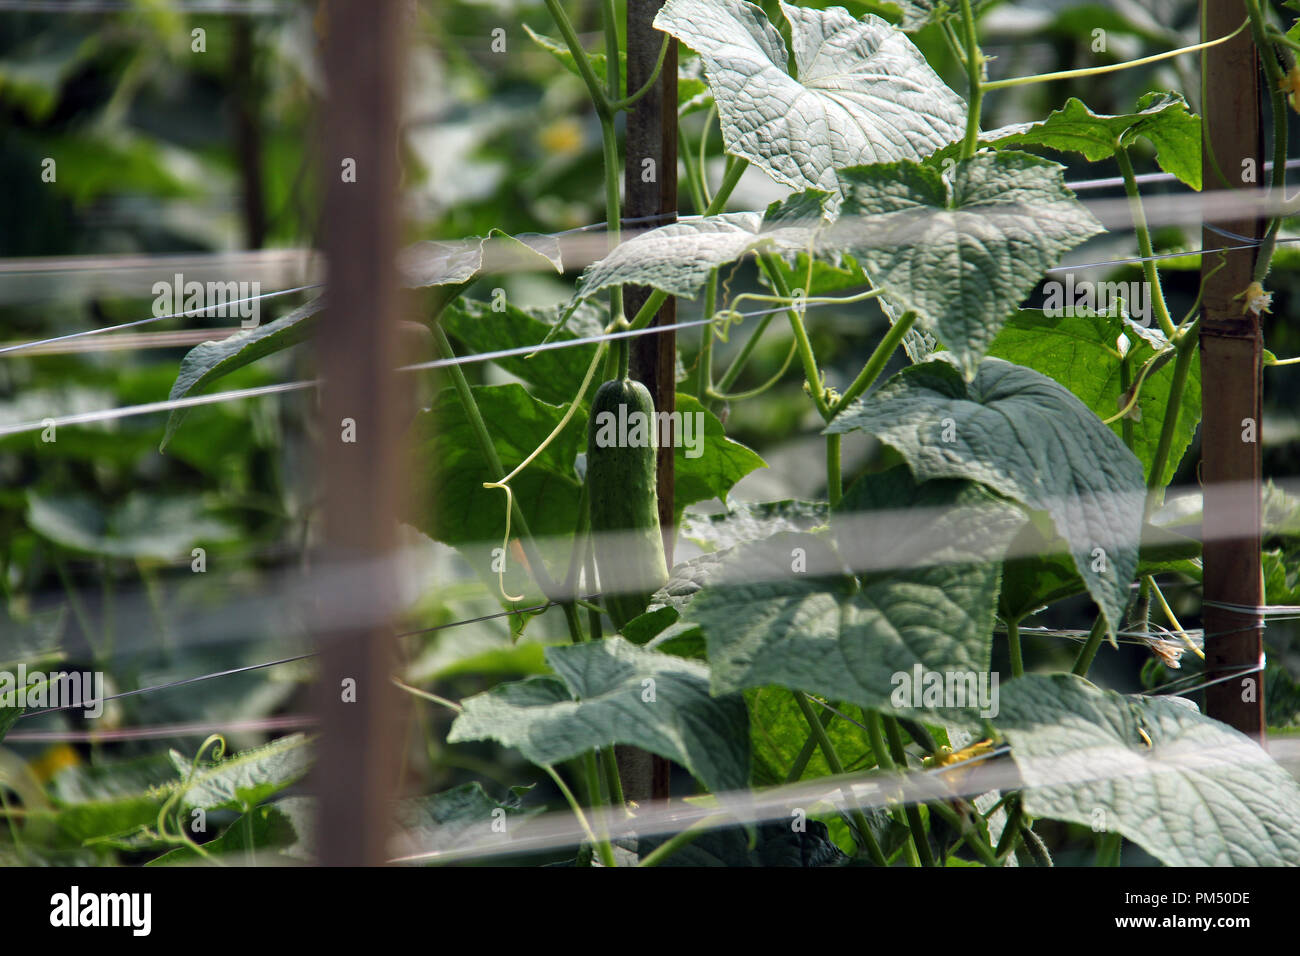 Cucumber plantation in Bandung, Indonesia, Southeast Asia. - Stock Image